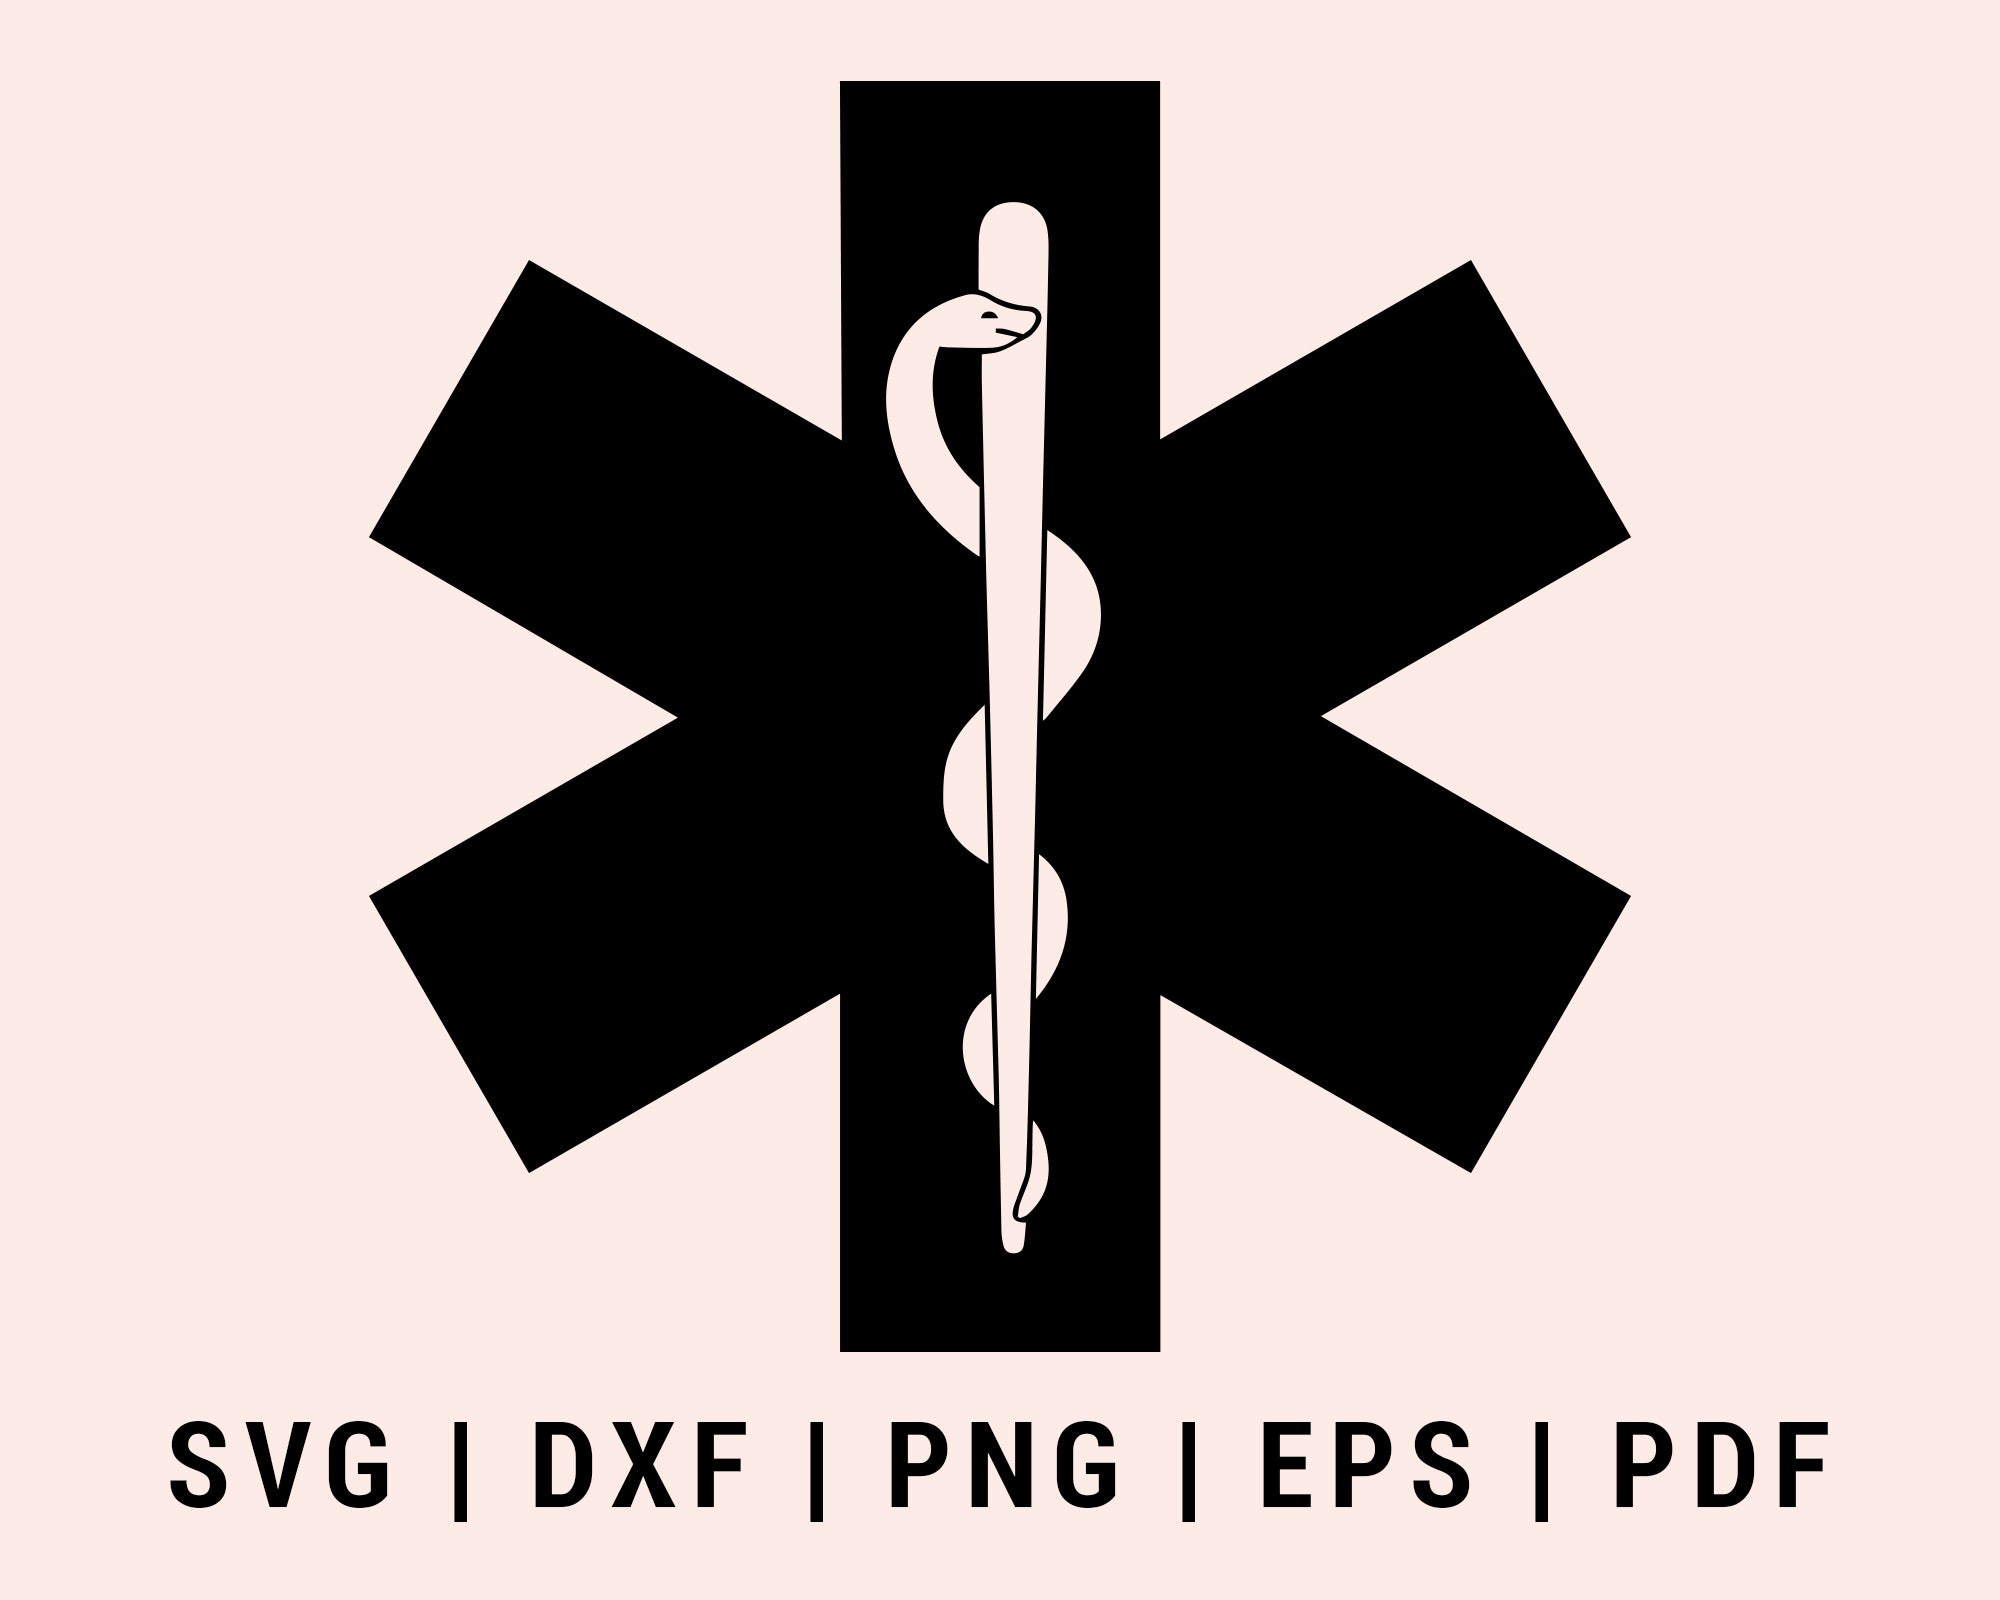 Paramedic Star of Life EMS Logo Cut File For Cricut Bundle svg, dxf, png, eps, pdf Silhouette Files